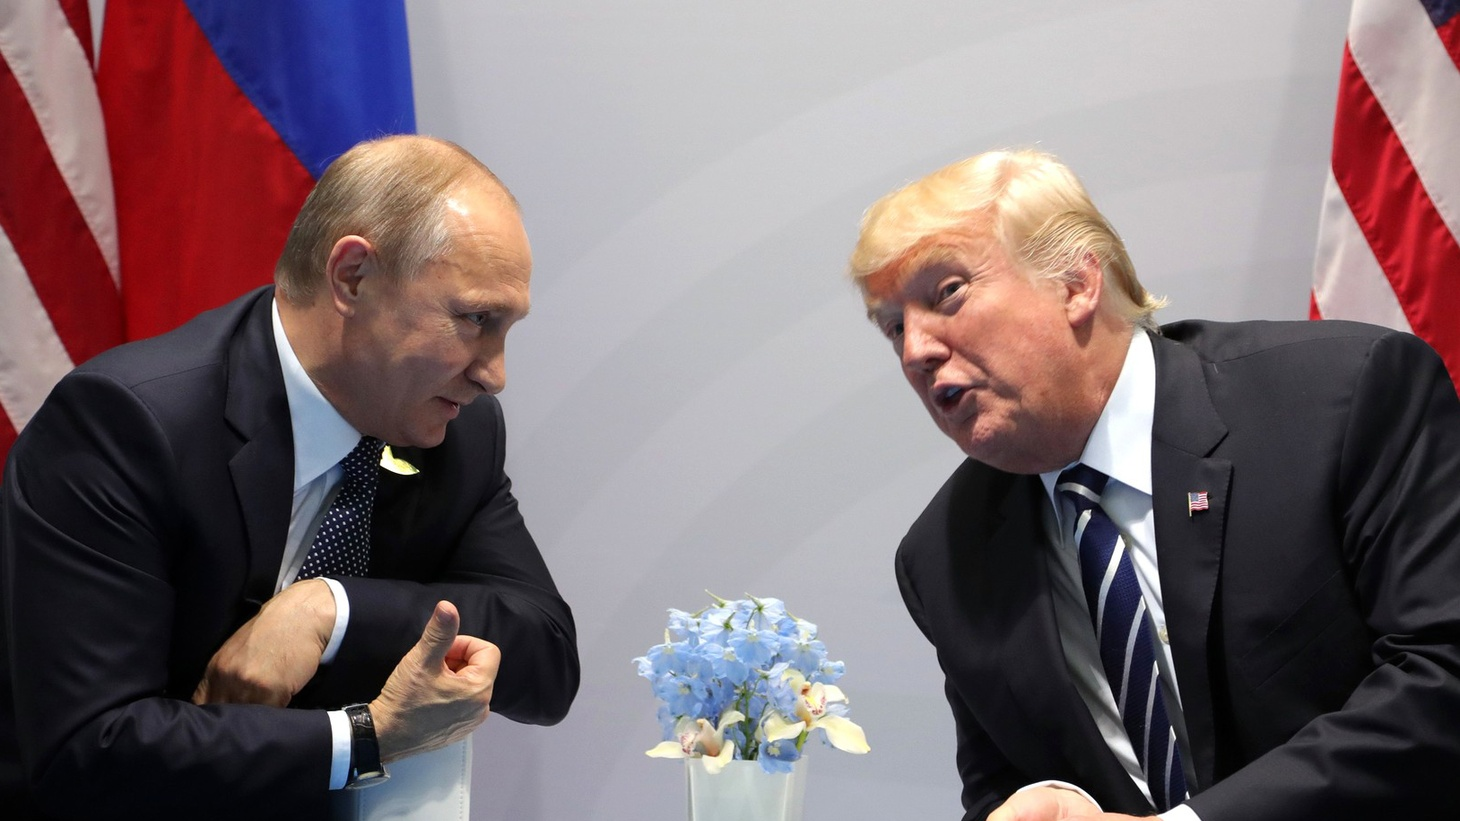 Revelations of Russian meddling in the 2016 US presidential election were a shock to Americans. But it wasn't quite as surprising to people in former Soviet States and the EU.